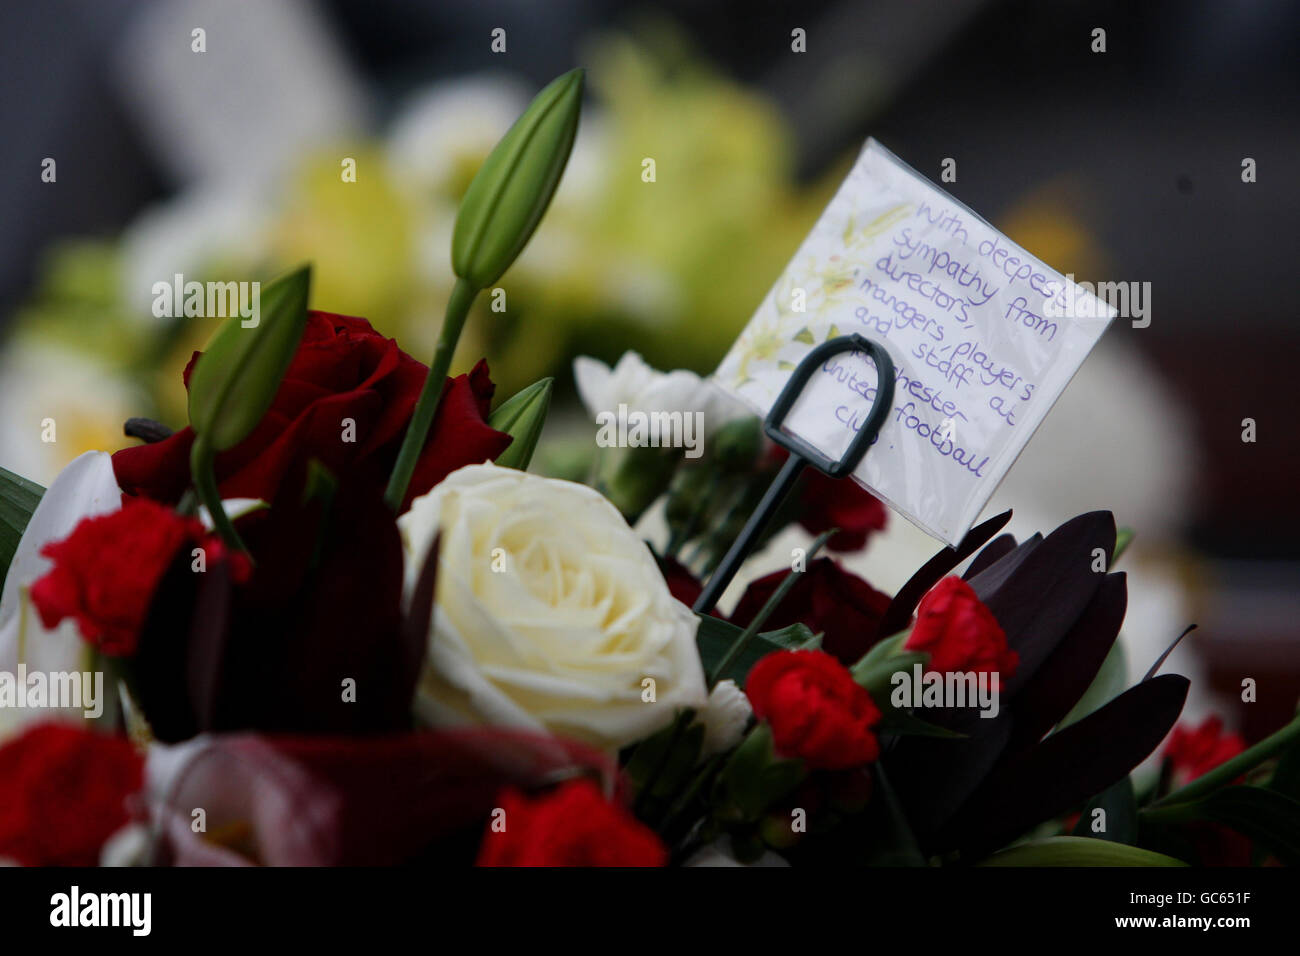 Floral Tribute From Manchester United Stock Photos Floral Tribute